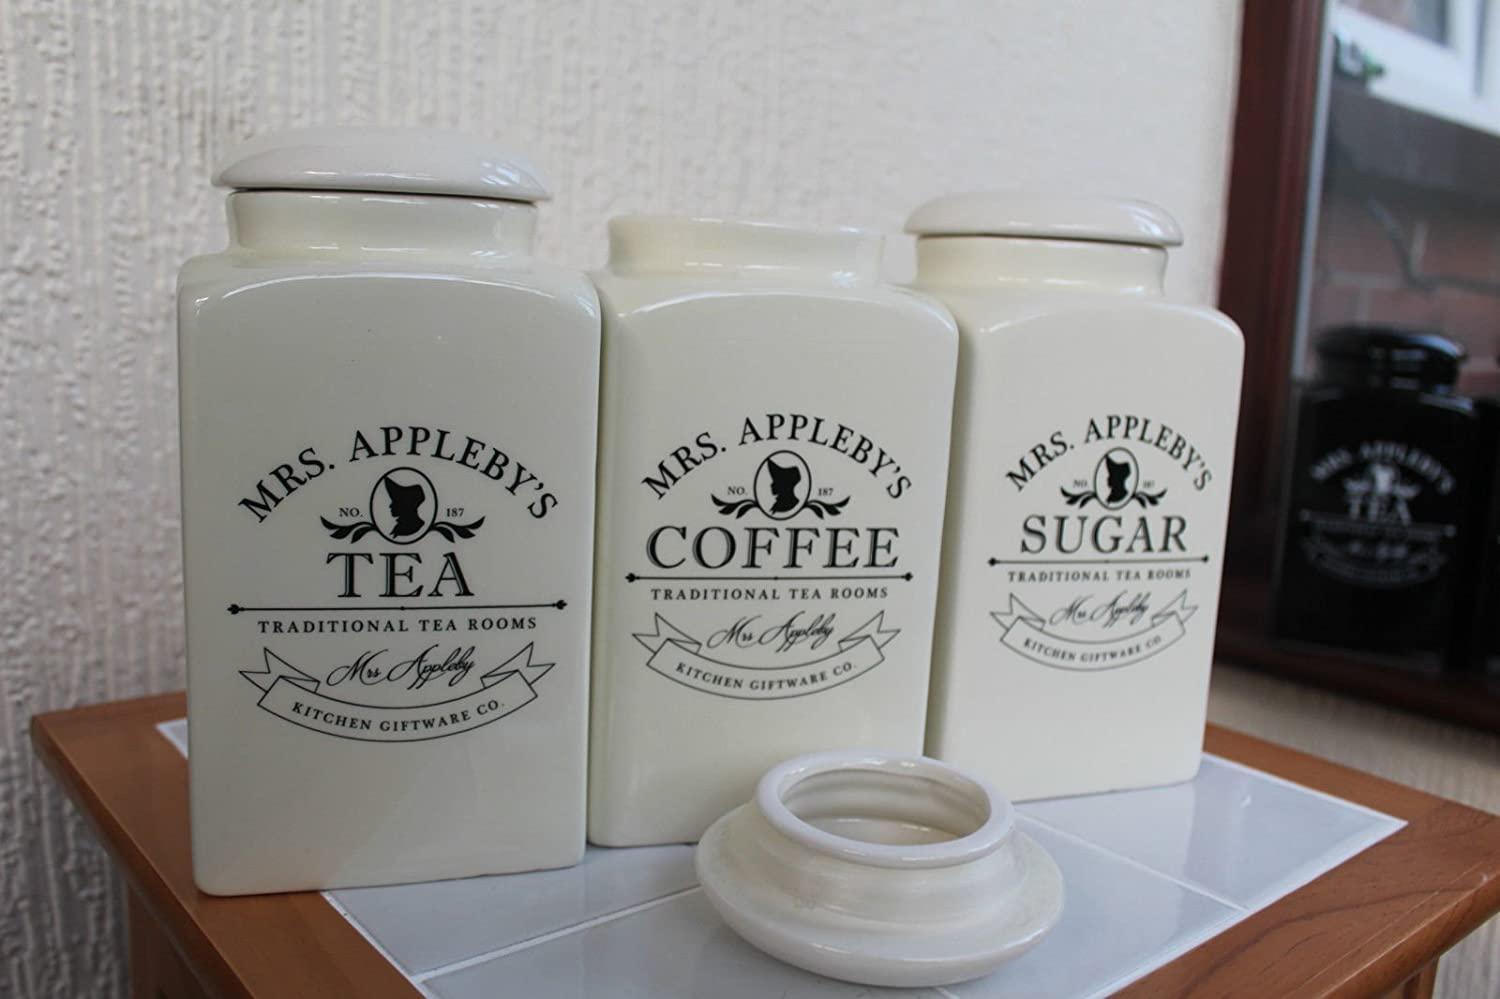 Preferred Tea Coffee Sugar Canisters - Coffee Drinker GQ09